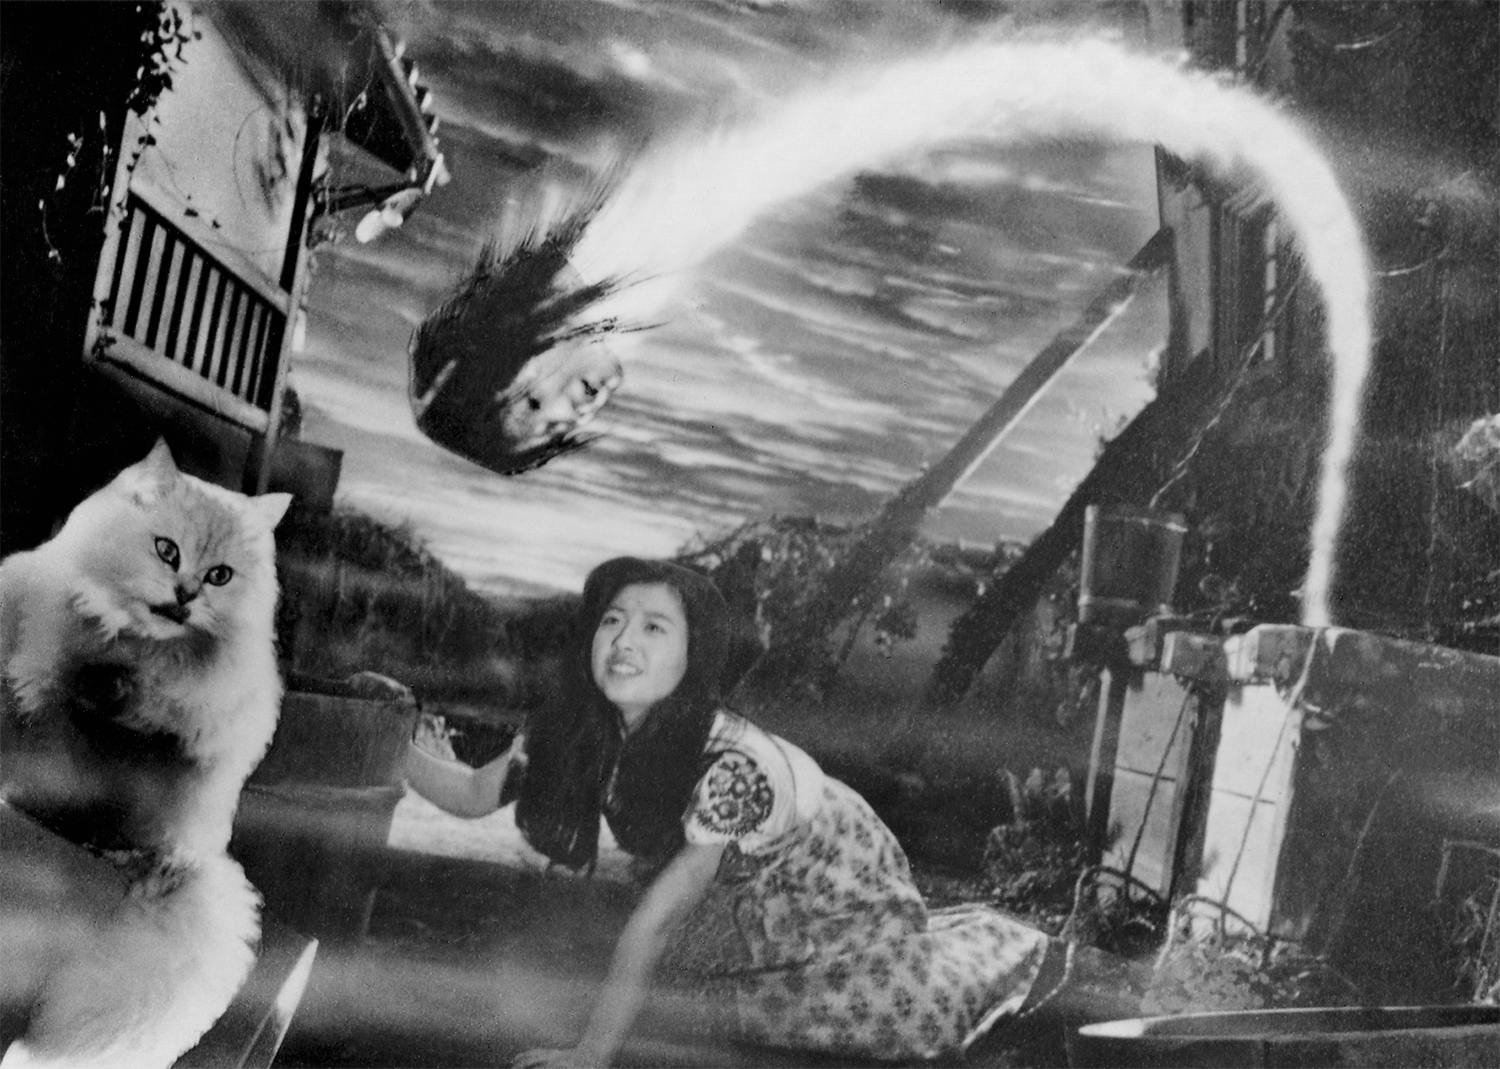 weird stuff in House (Hausu, 1977)